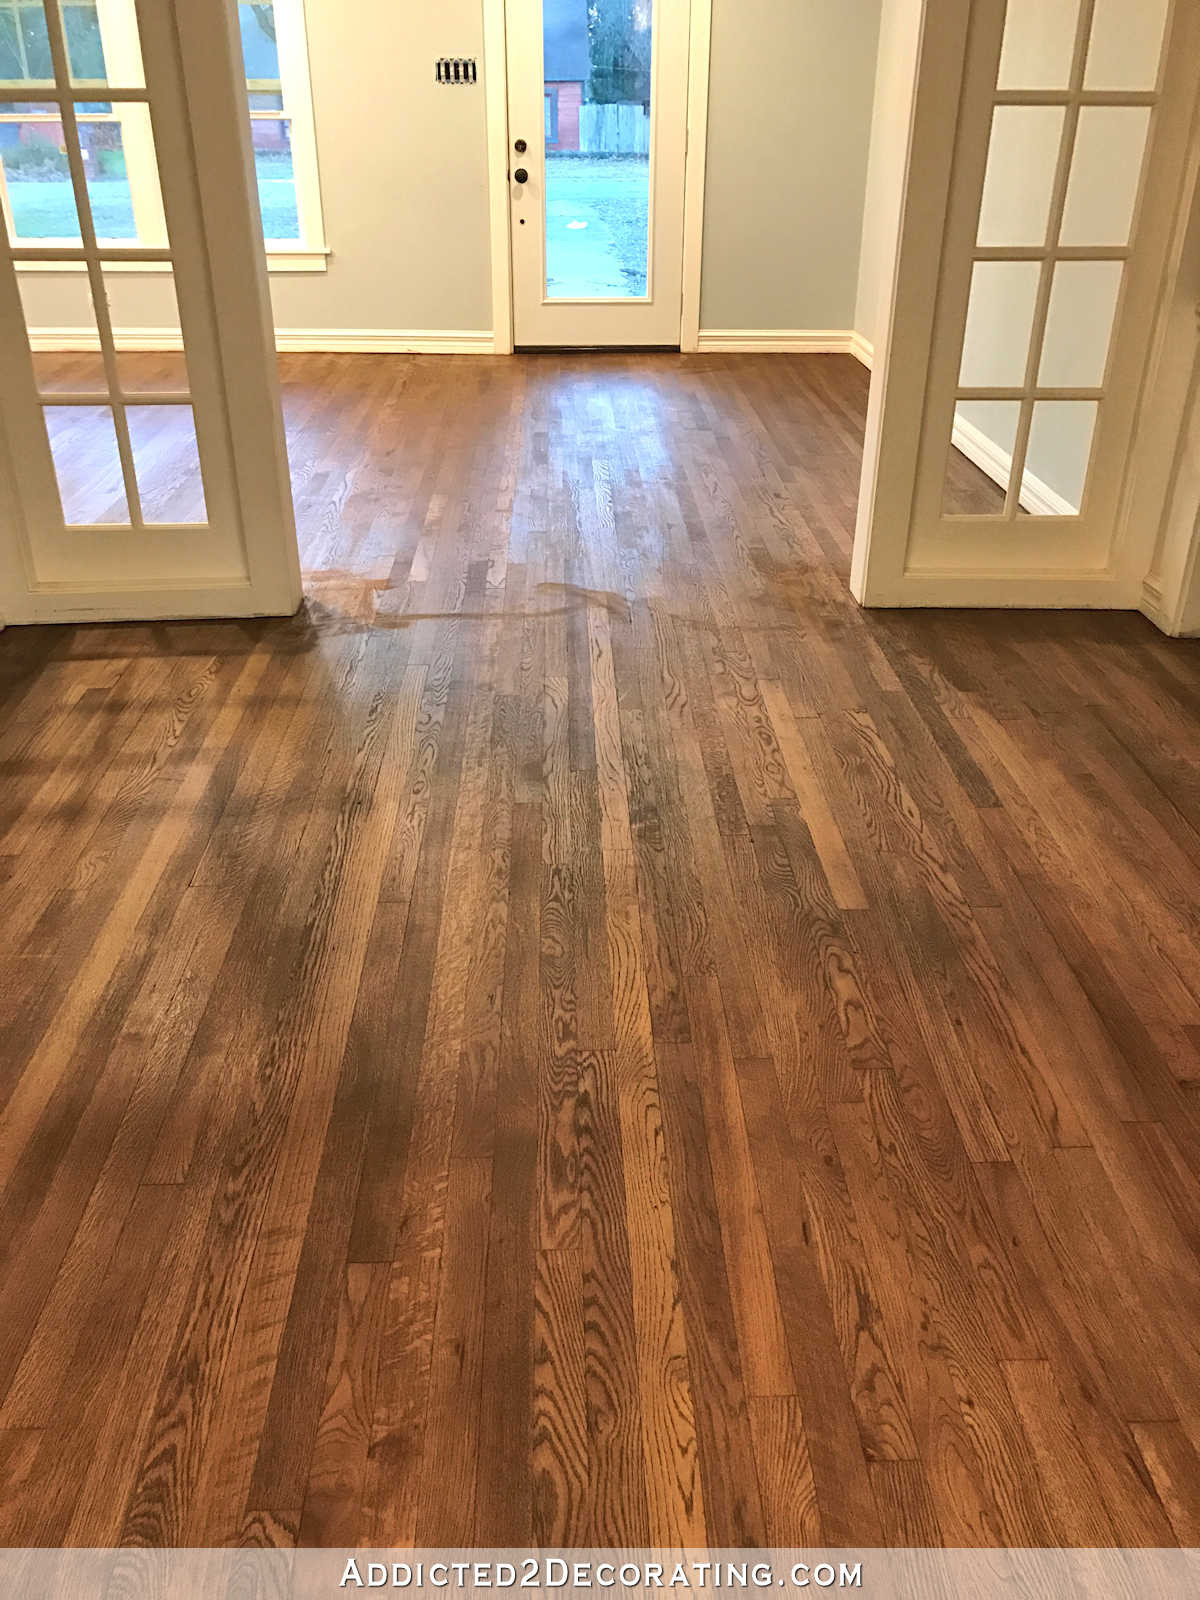 hardwood floor refinishing specialists of adventures in staining my red oak hardwood floors products process with regard to staining red oak hardwood floors 9 stain on entryway and music room floors